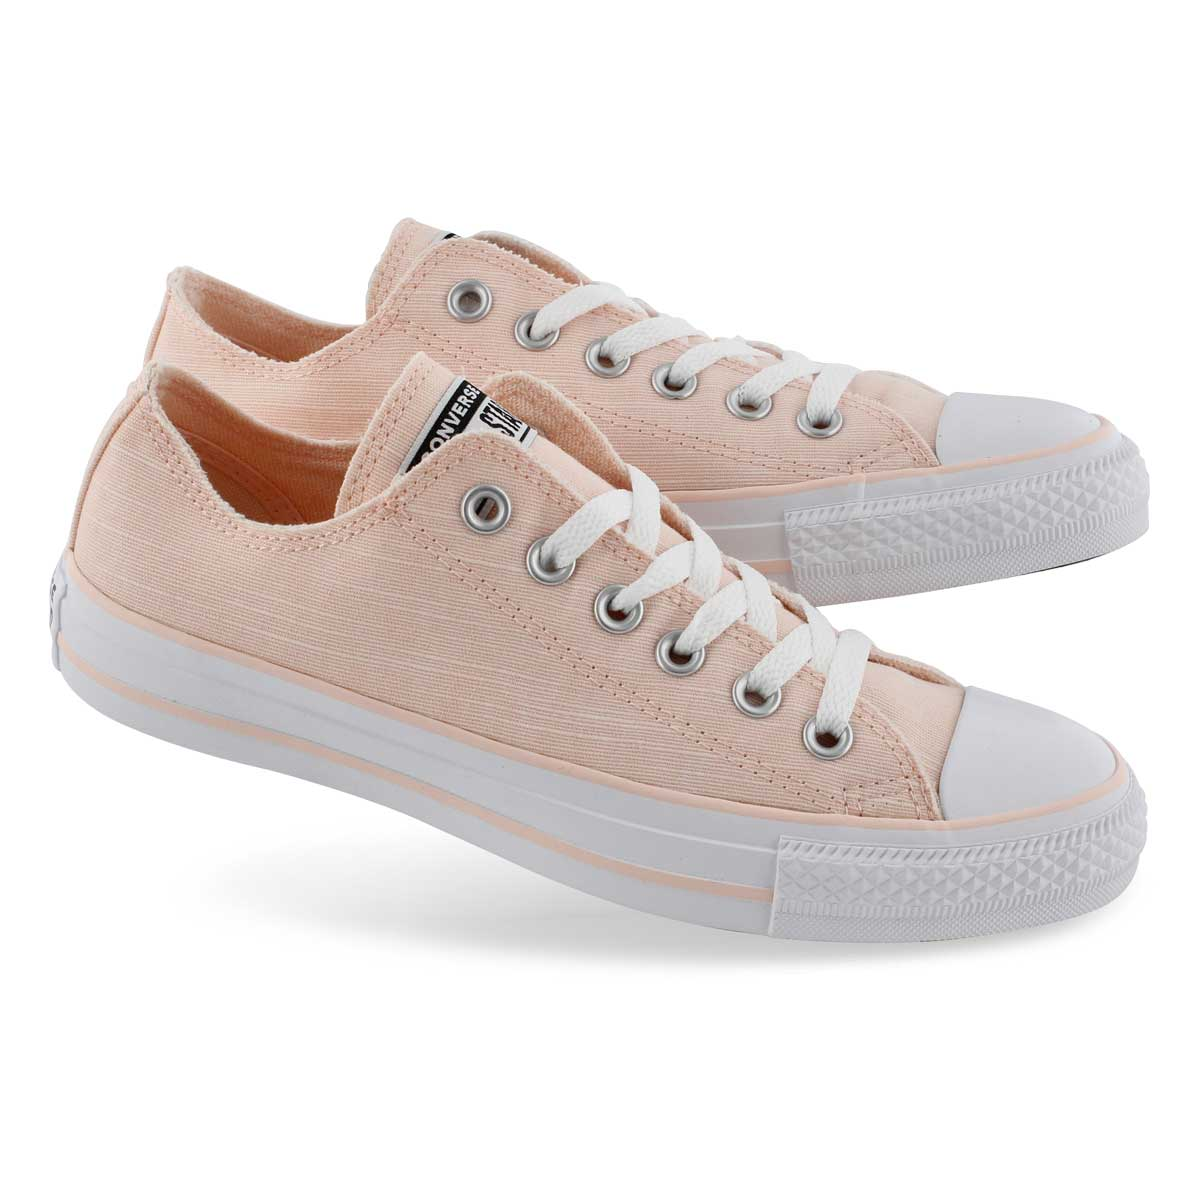 Lds CTAS Seasonal Ox washed coral snkr